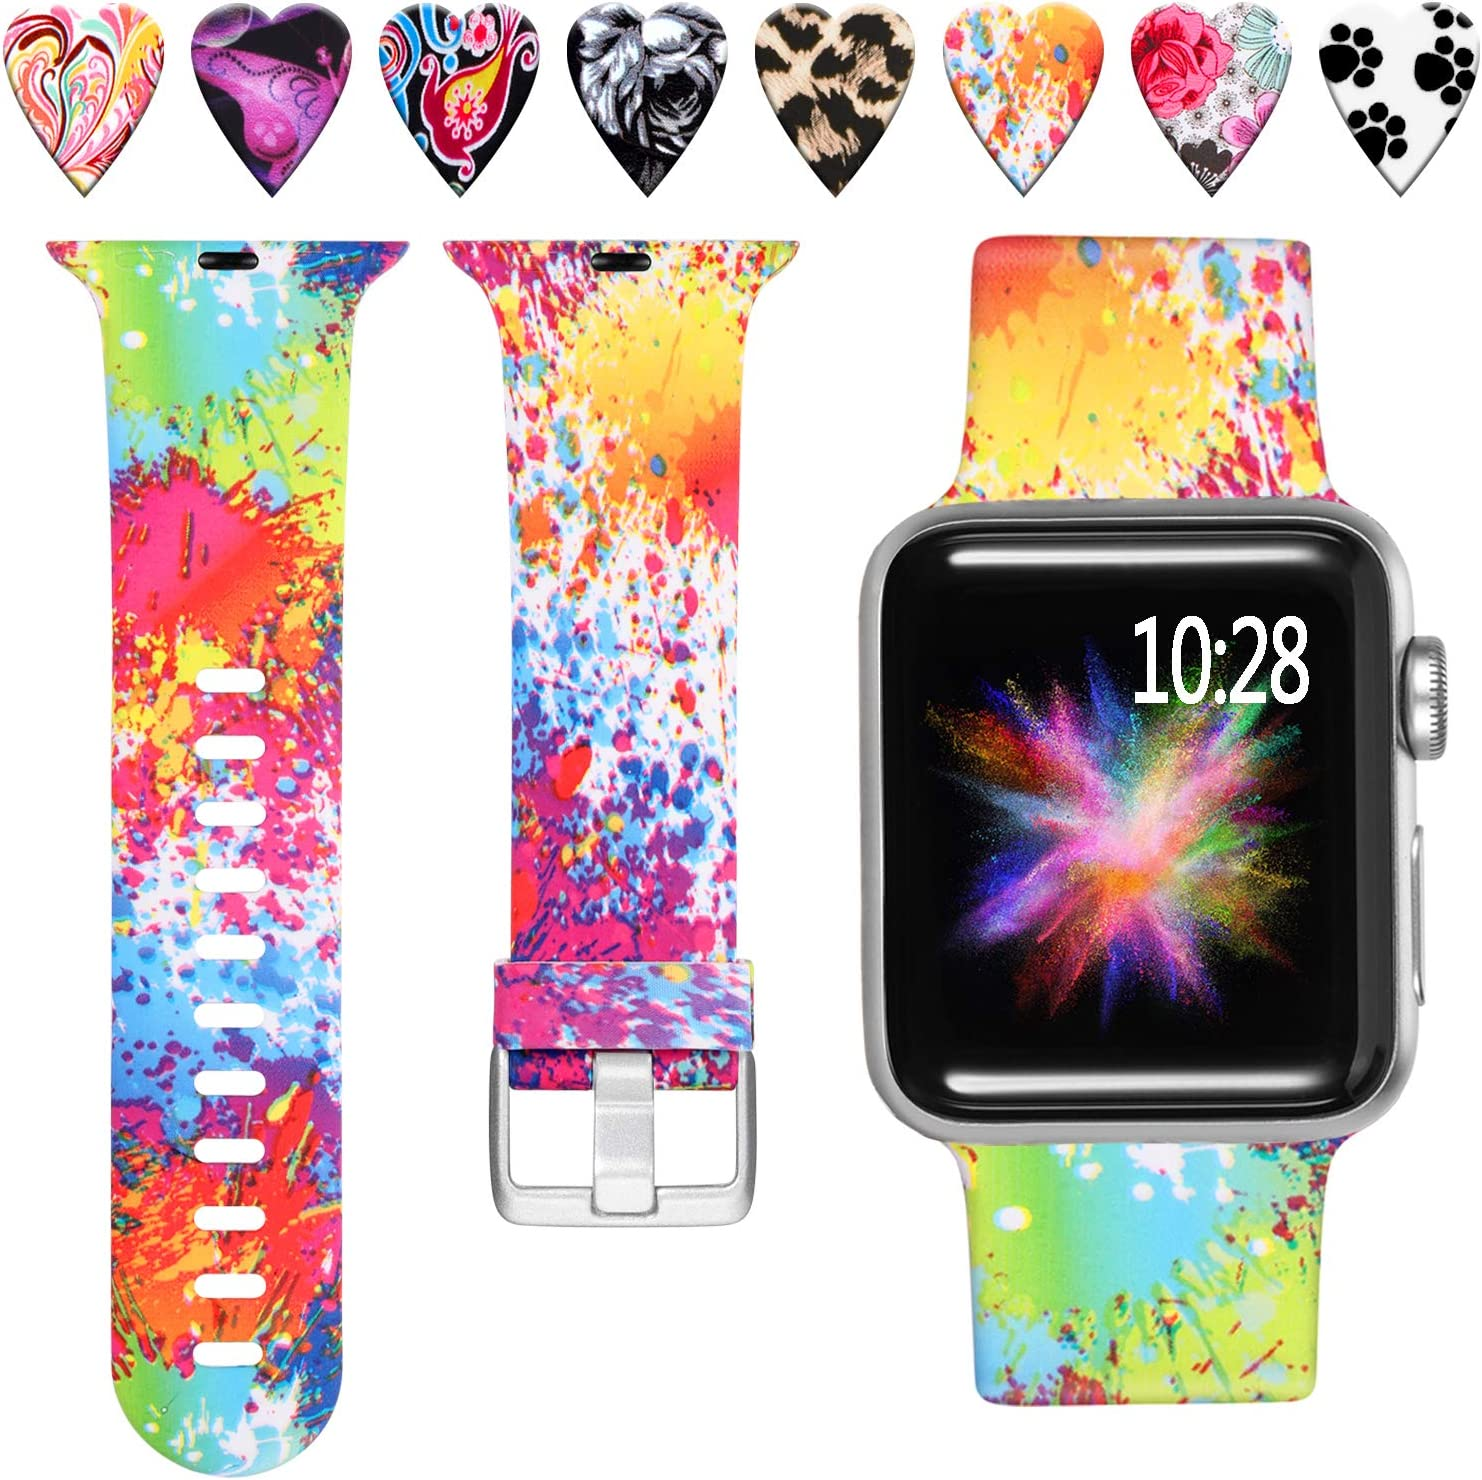 Laffav Compatible with Apple Watch Band 40mm 38mm, Soft Replacement Pattern Wristband for iWatch Apple Watch SE & Series 6, Series 5, Series 4, Series 3, Series 2, Series 1, Splash-ink, S/M